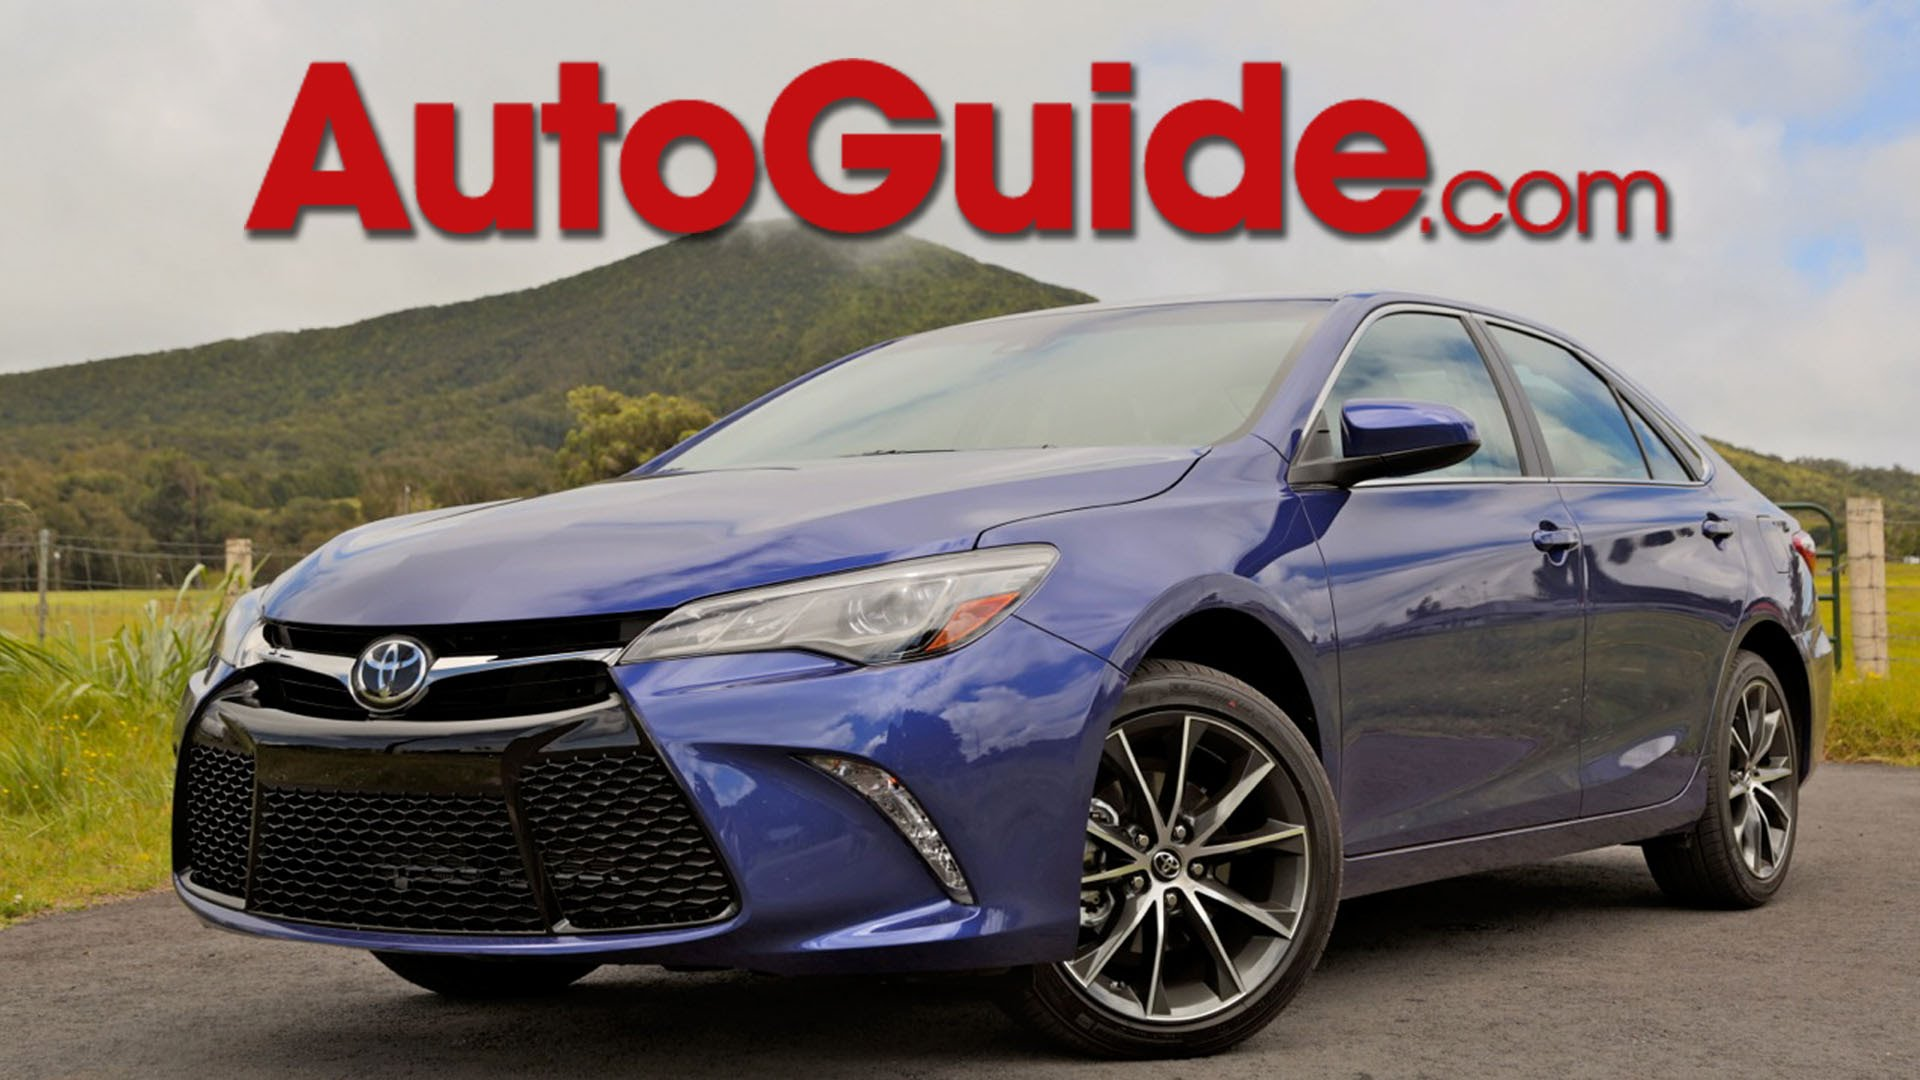 2015 Toyota Camry Car Review Video